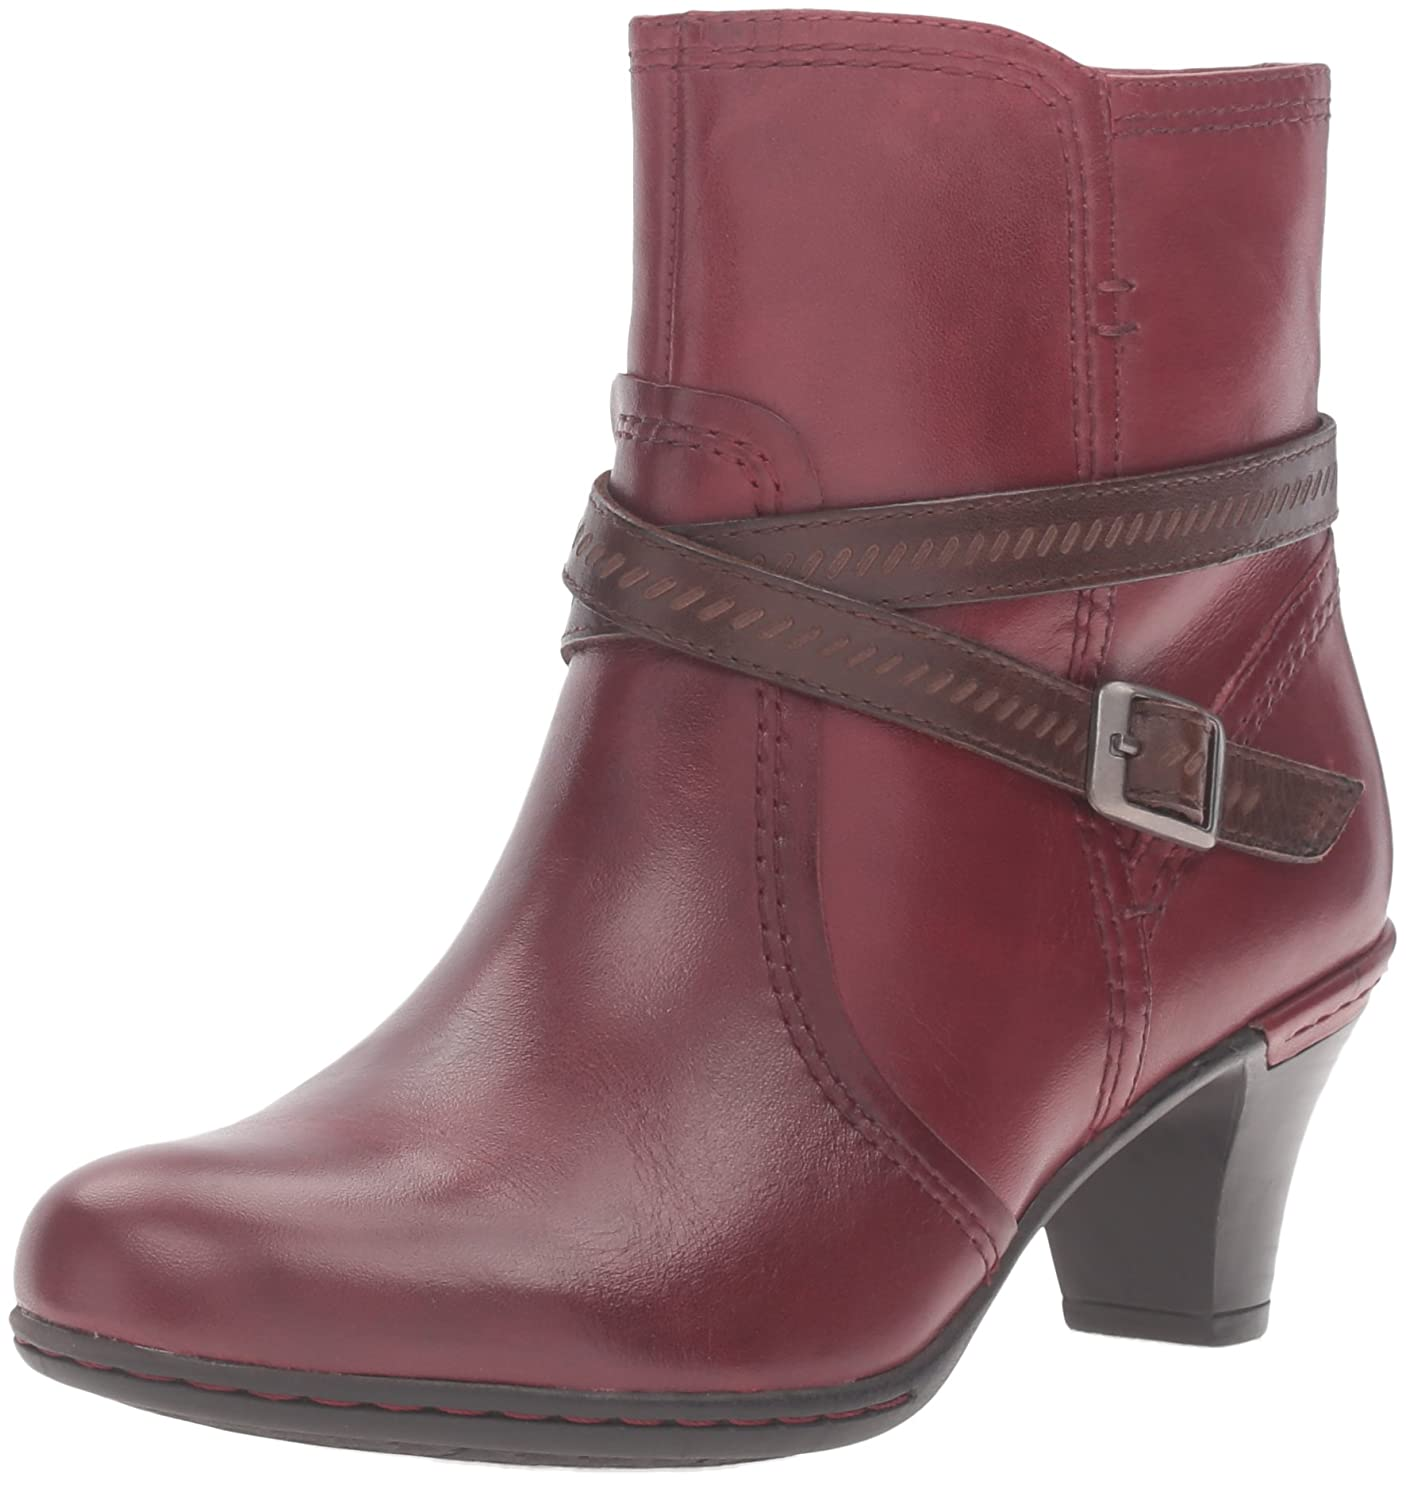 Rockport Women's Cobb Hill Missy Boot B01AK64WBG 11 W US|Wine